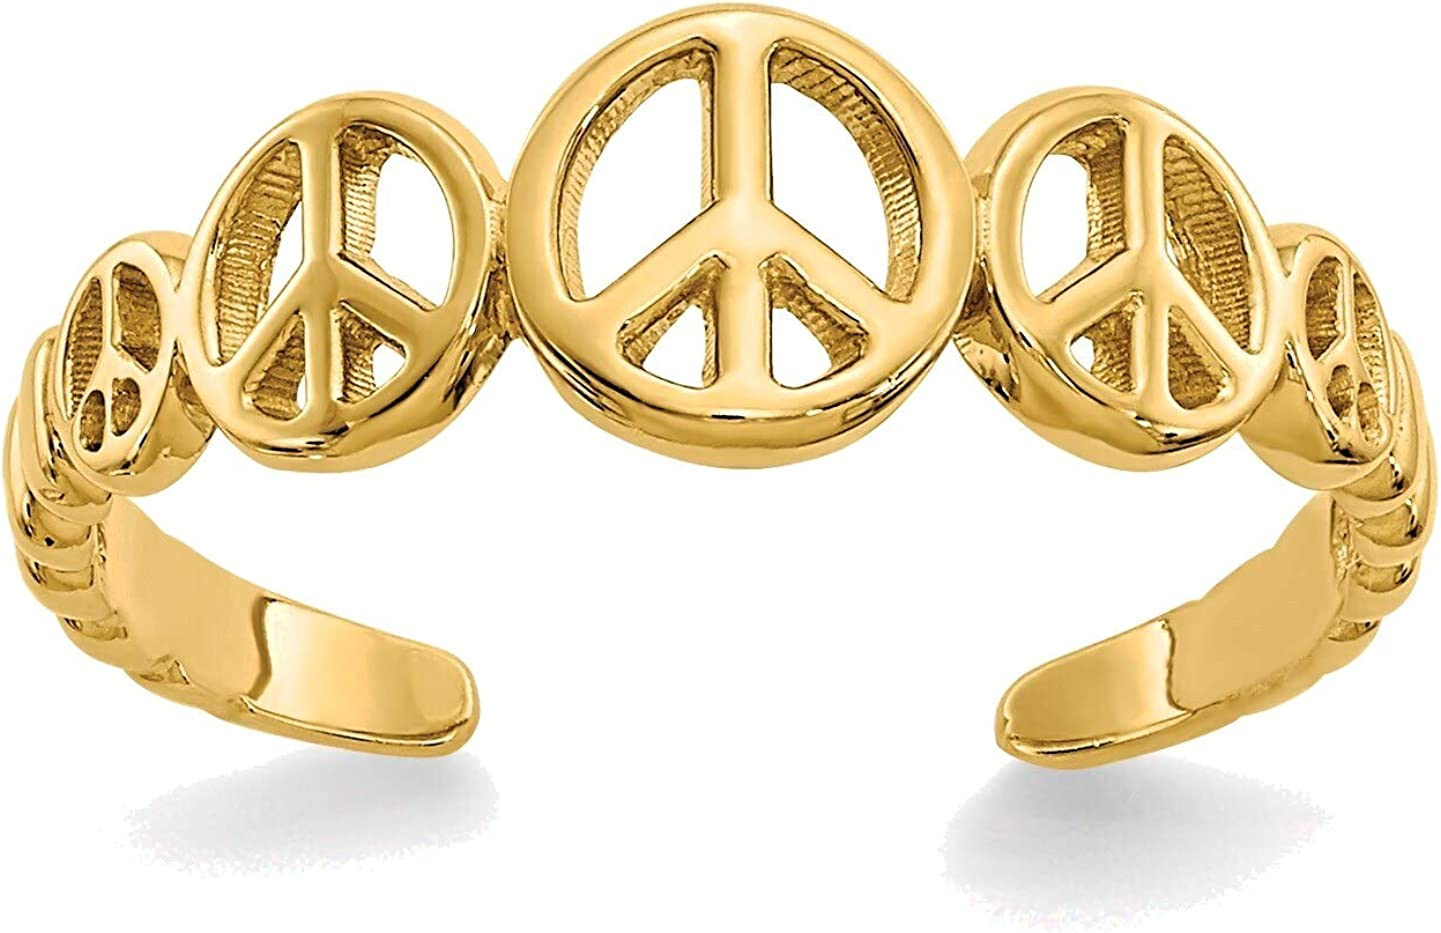 Bonyak Jewelry Peace Sign Toe Ring in 14K Yellow Gold in Size 11